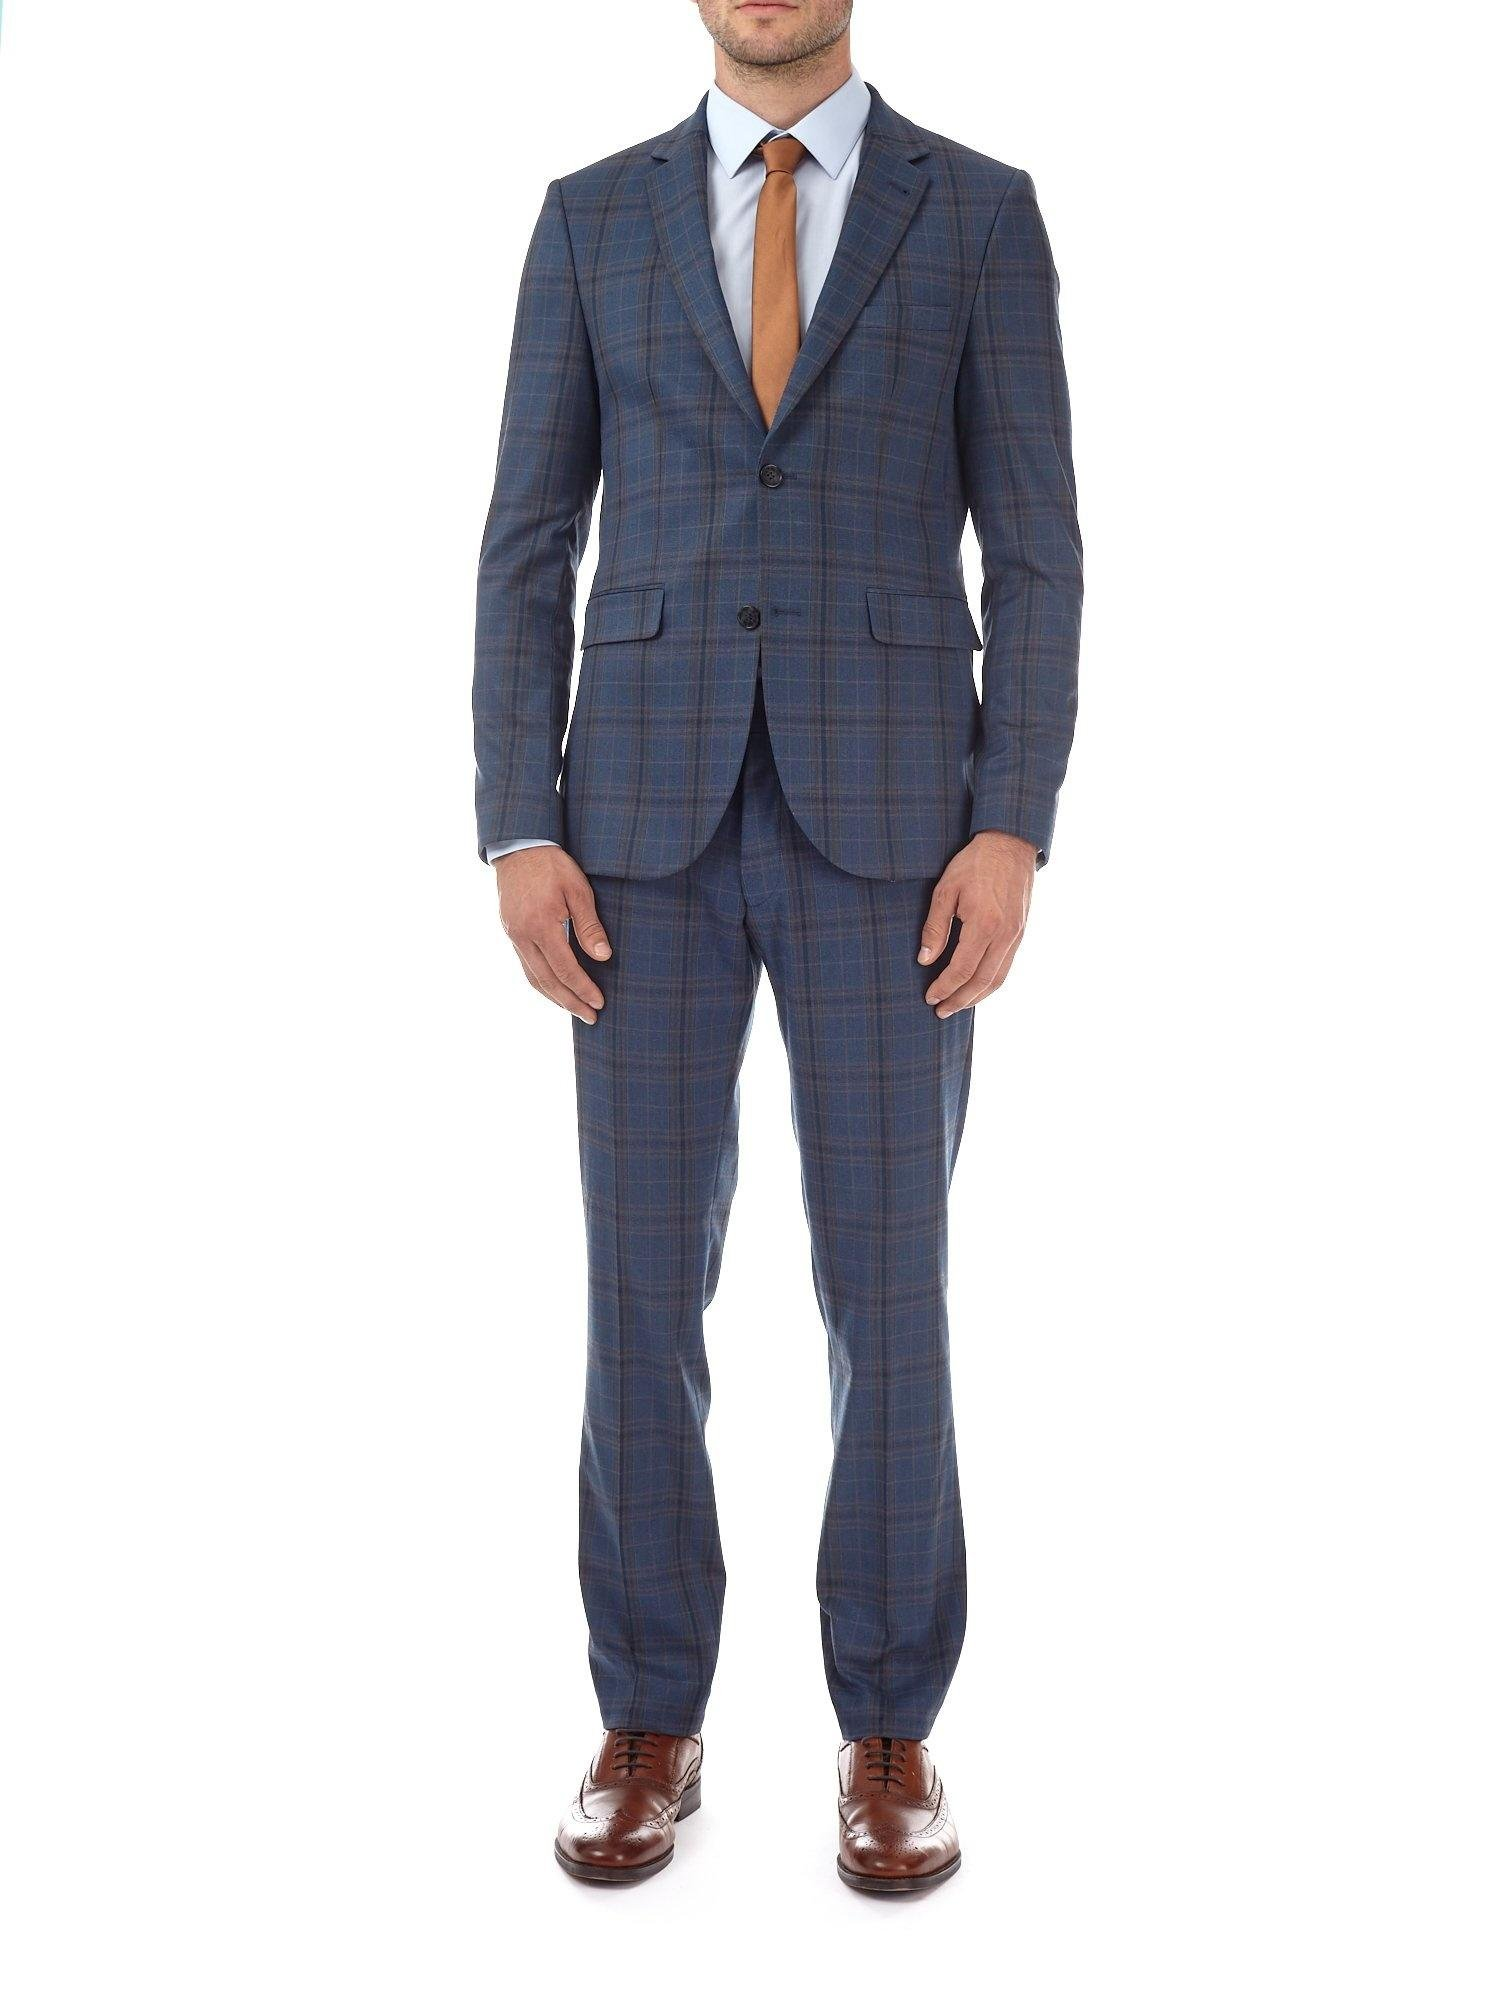 Burton Synthetic Blue Multi Checked Skinny Fit Suit Jacket for Men